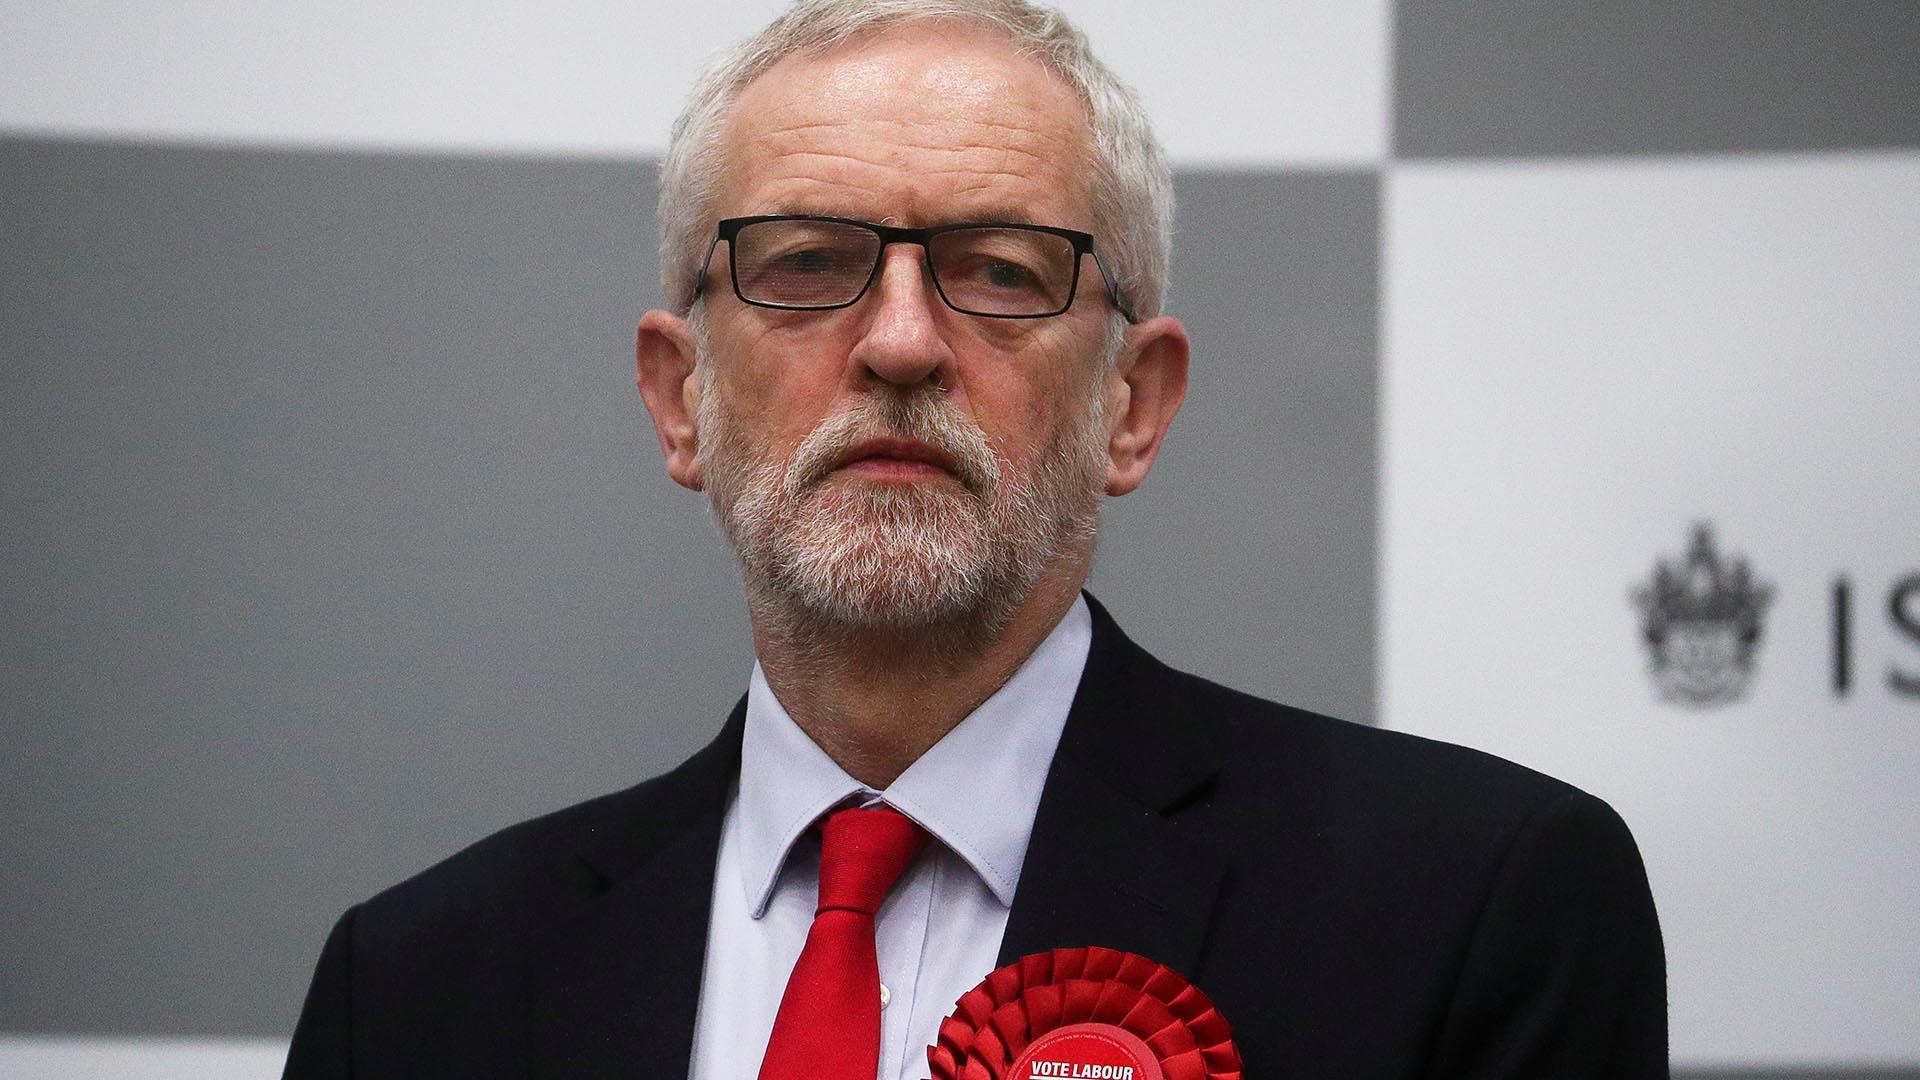 Socialist Jeremy Corbyn To Step Down As Leader Of Labour Party After Defeat In U K Election